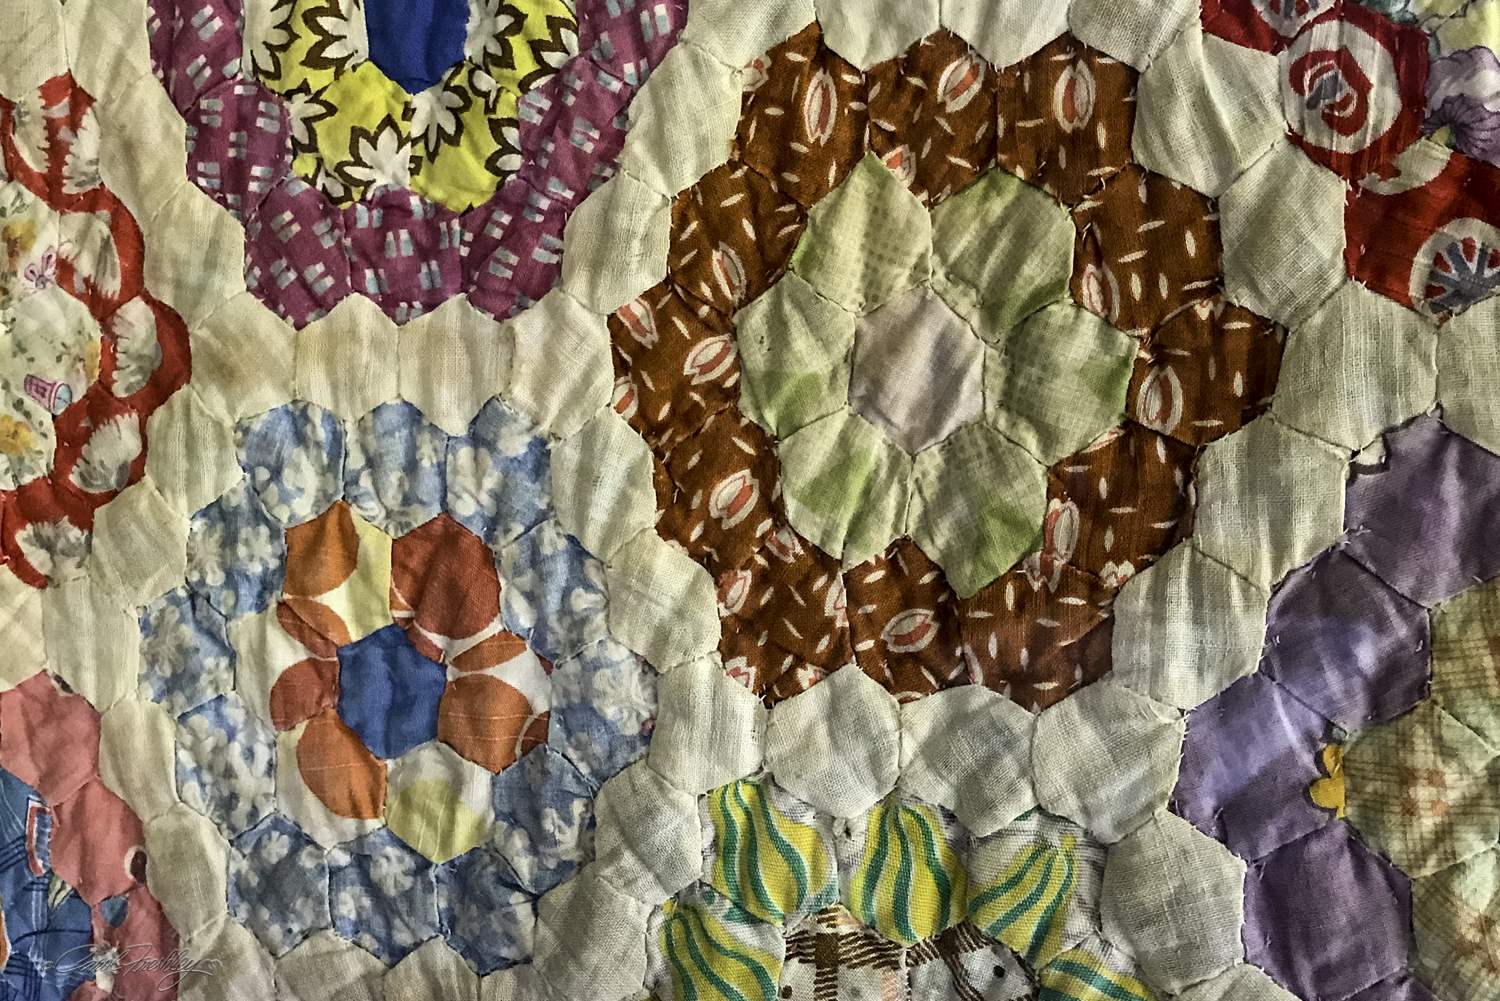 The woman at the quilt shop was very excited about a gift she had received earlier in the day of a grocery bag full of old flour bags. She explained that early flour mills found marketing advantage in putting their flour in fabric bags that could be used for making clothing item, and more importantly, quilts. The photo above shows a small portion of such a quilt.